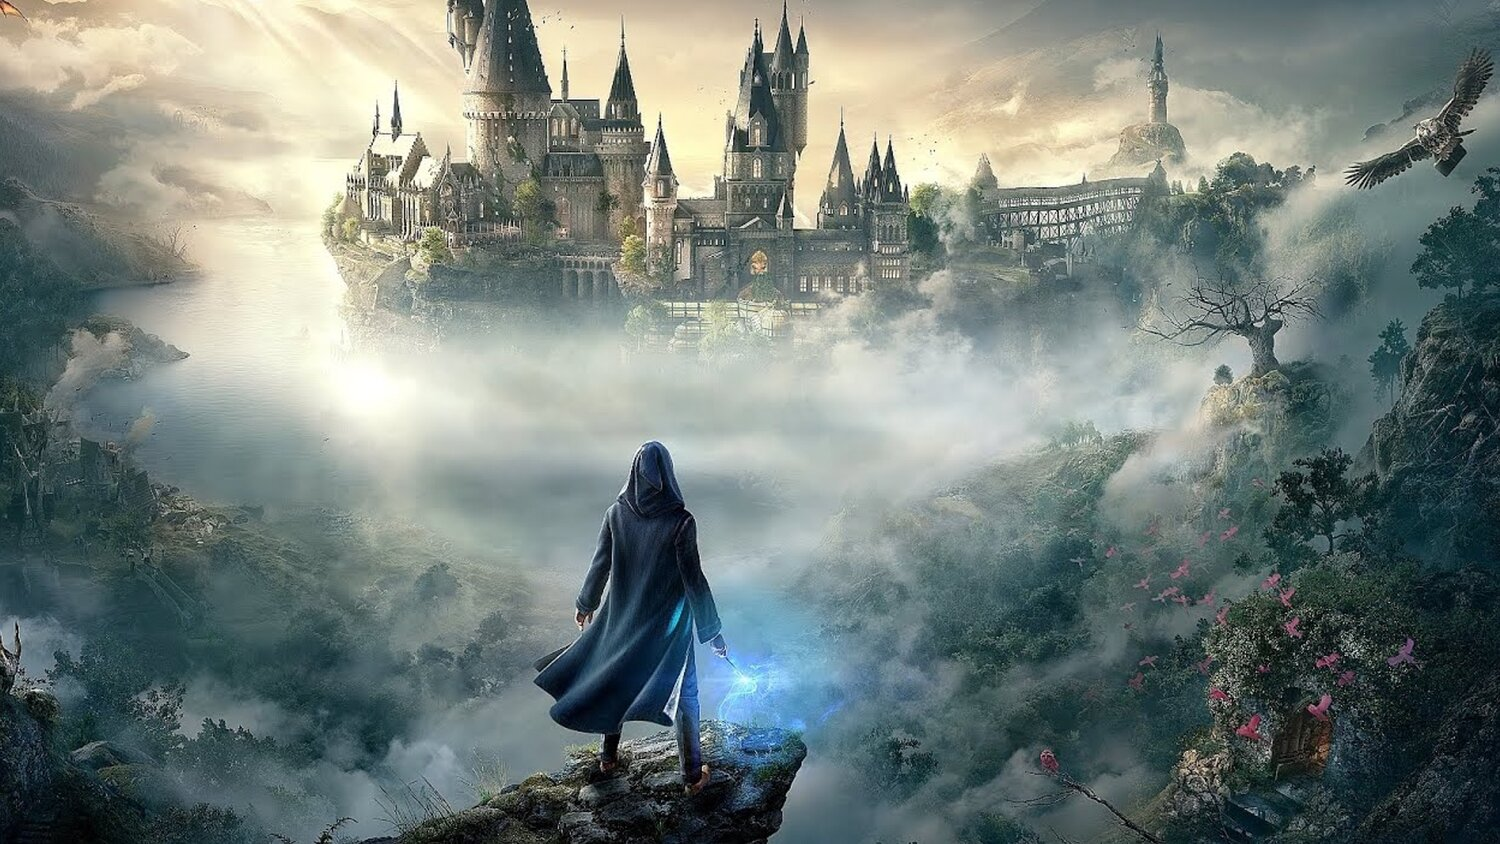 Magical Trailer for PS5's Open World Wizarding World Game HOGWARTS LEGACY Set in the 1800s — GeekTyrant